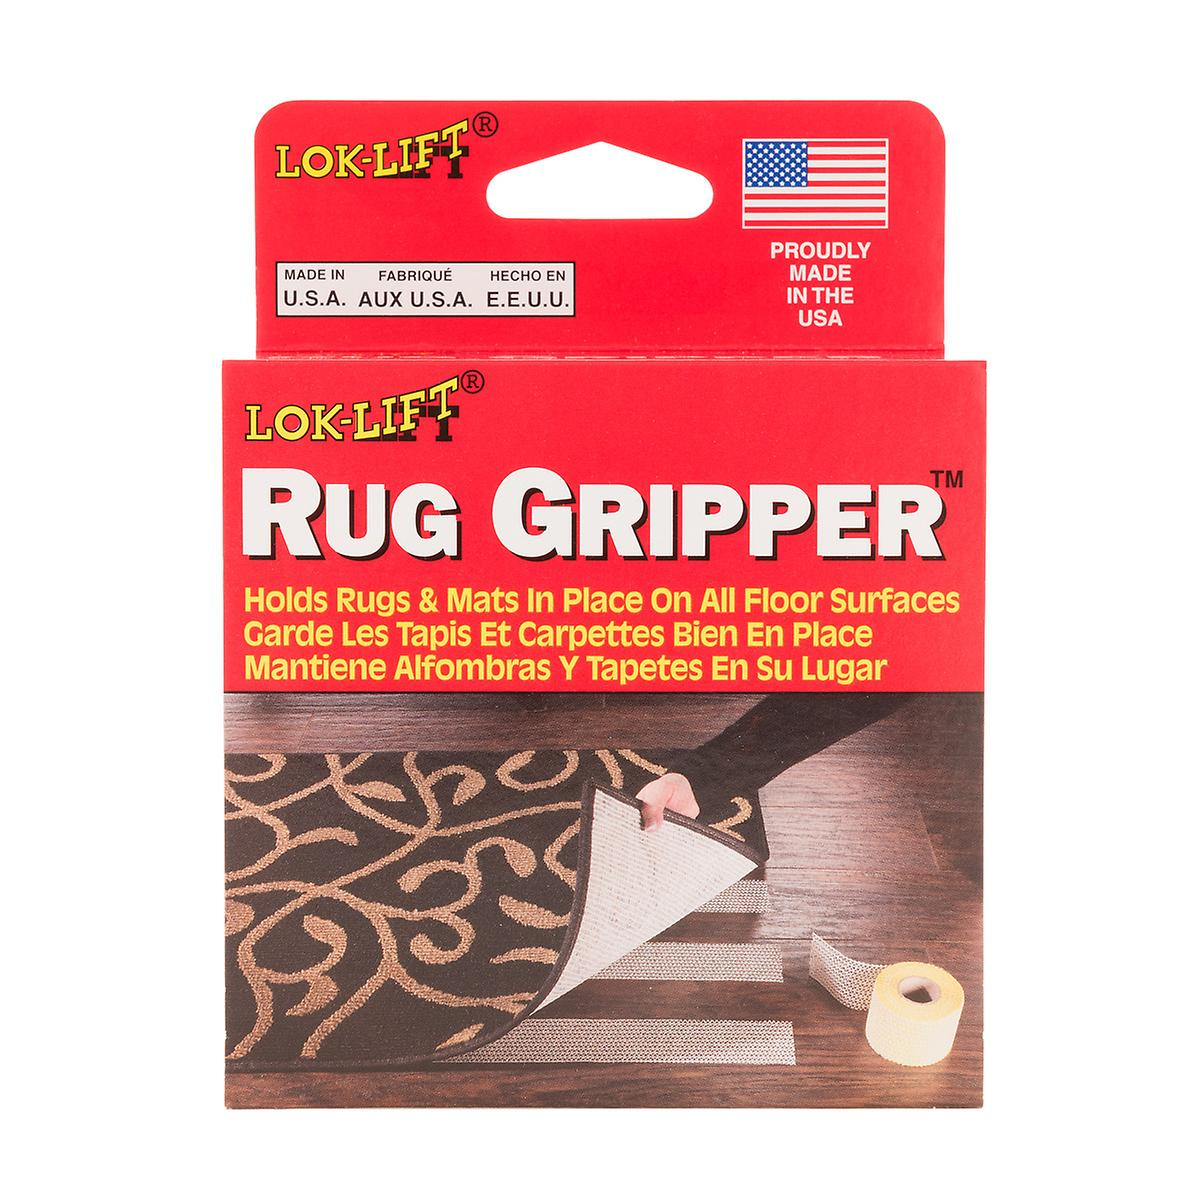 Rug Gripper Roll The Container